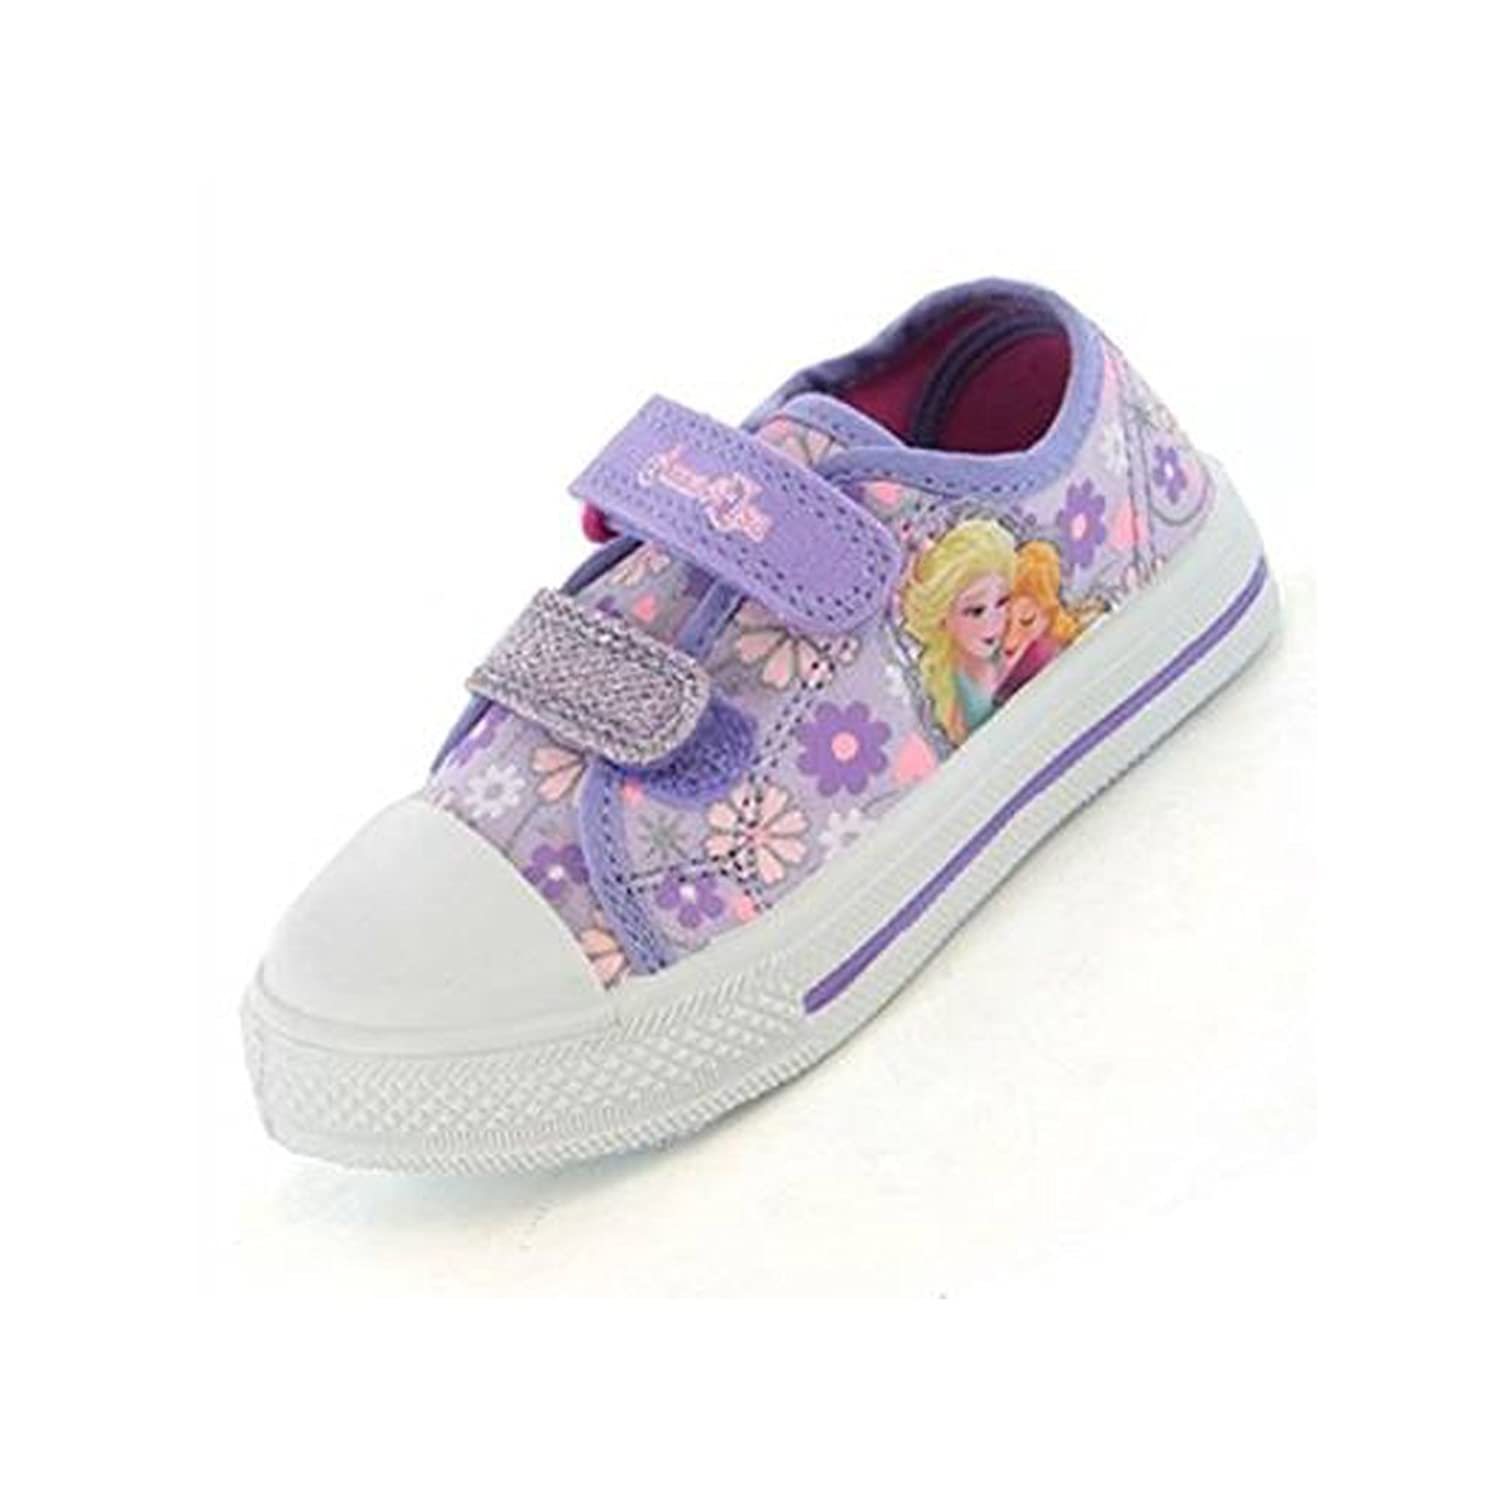 Disney Girls FROZEN Arctic Canvas Shoes in Lilac and Pink with a Floral  Design: Amazon.co.uk: Shoes & Bags